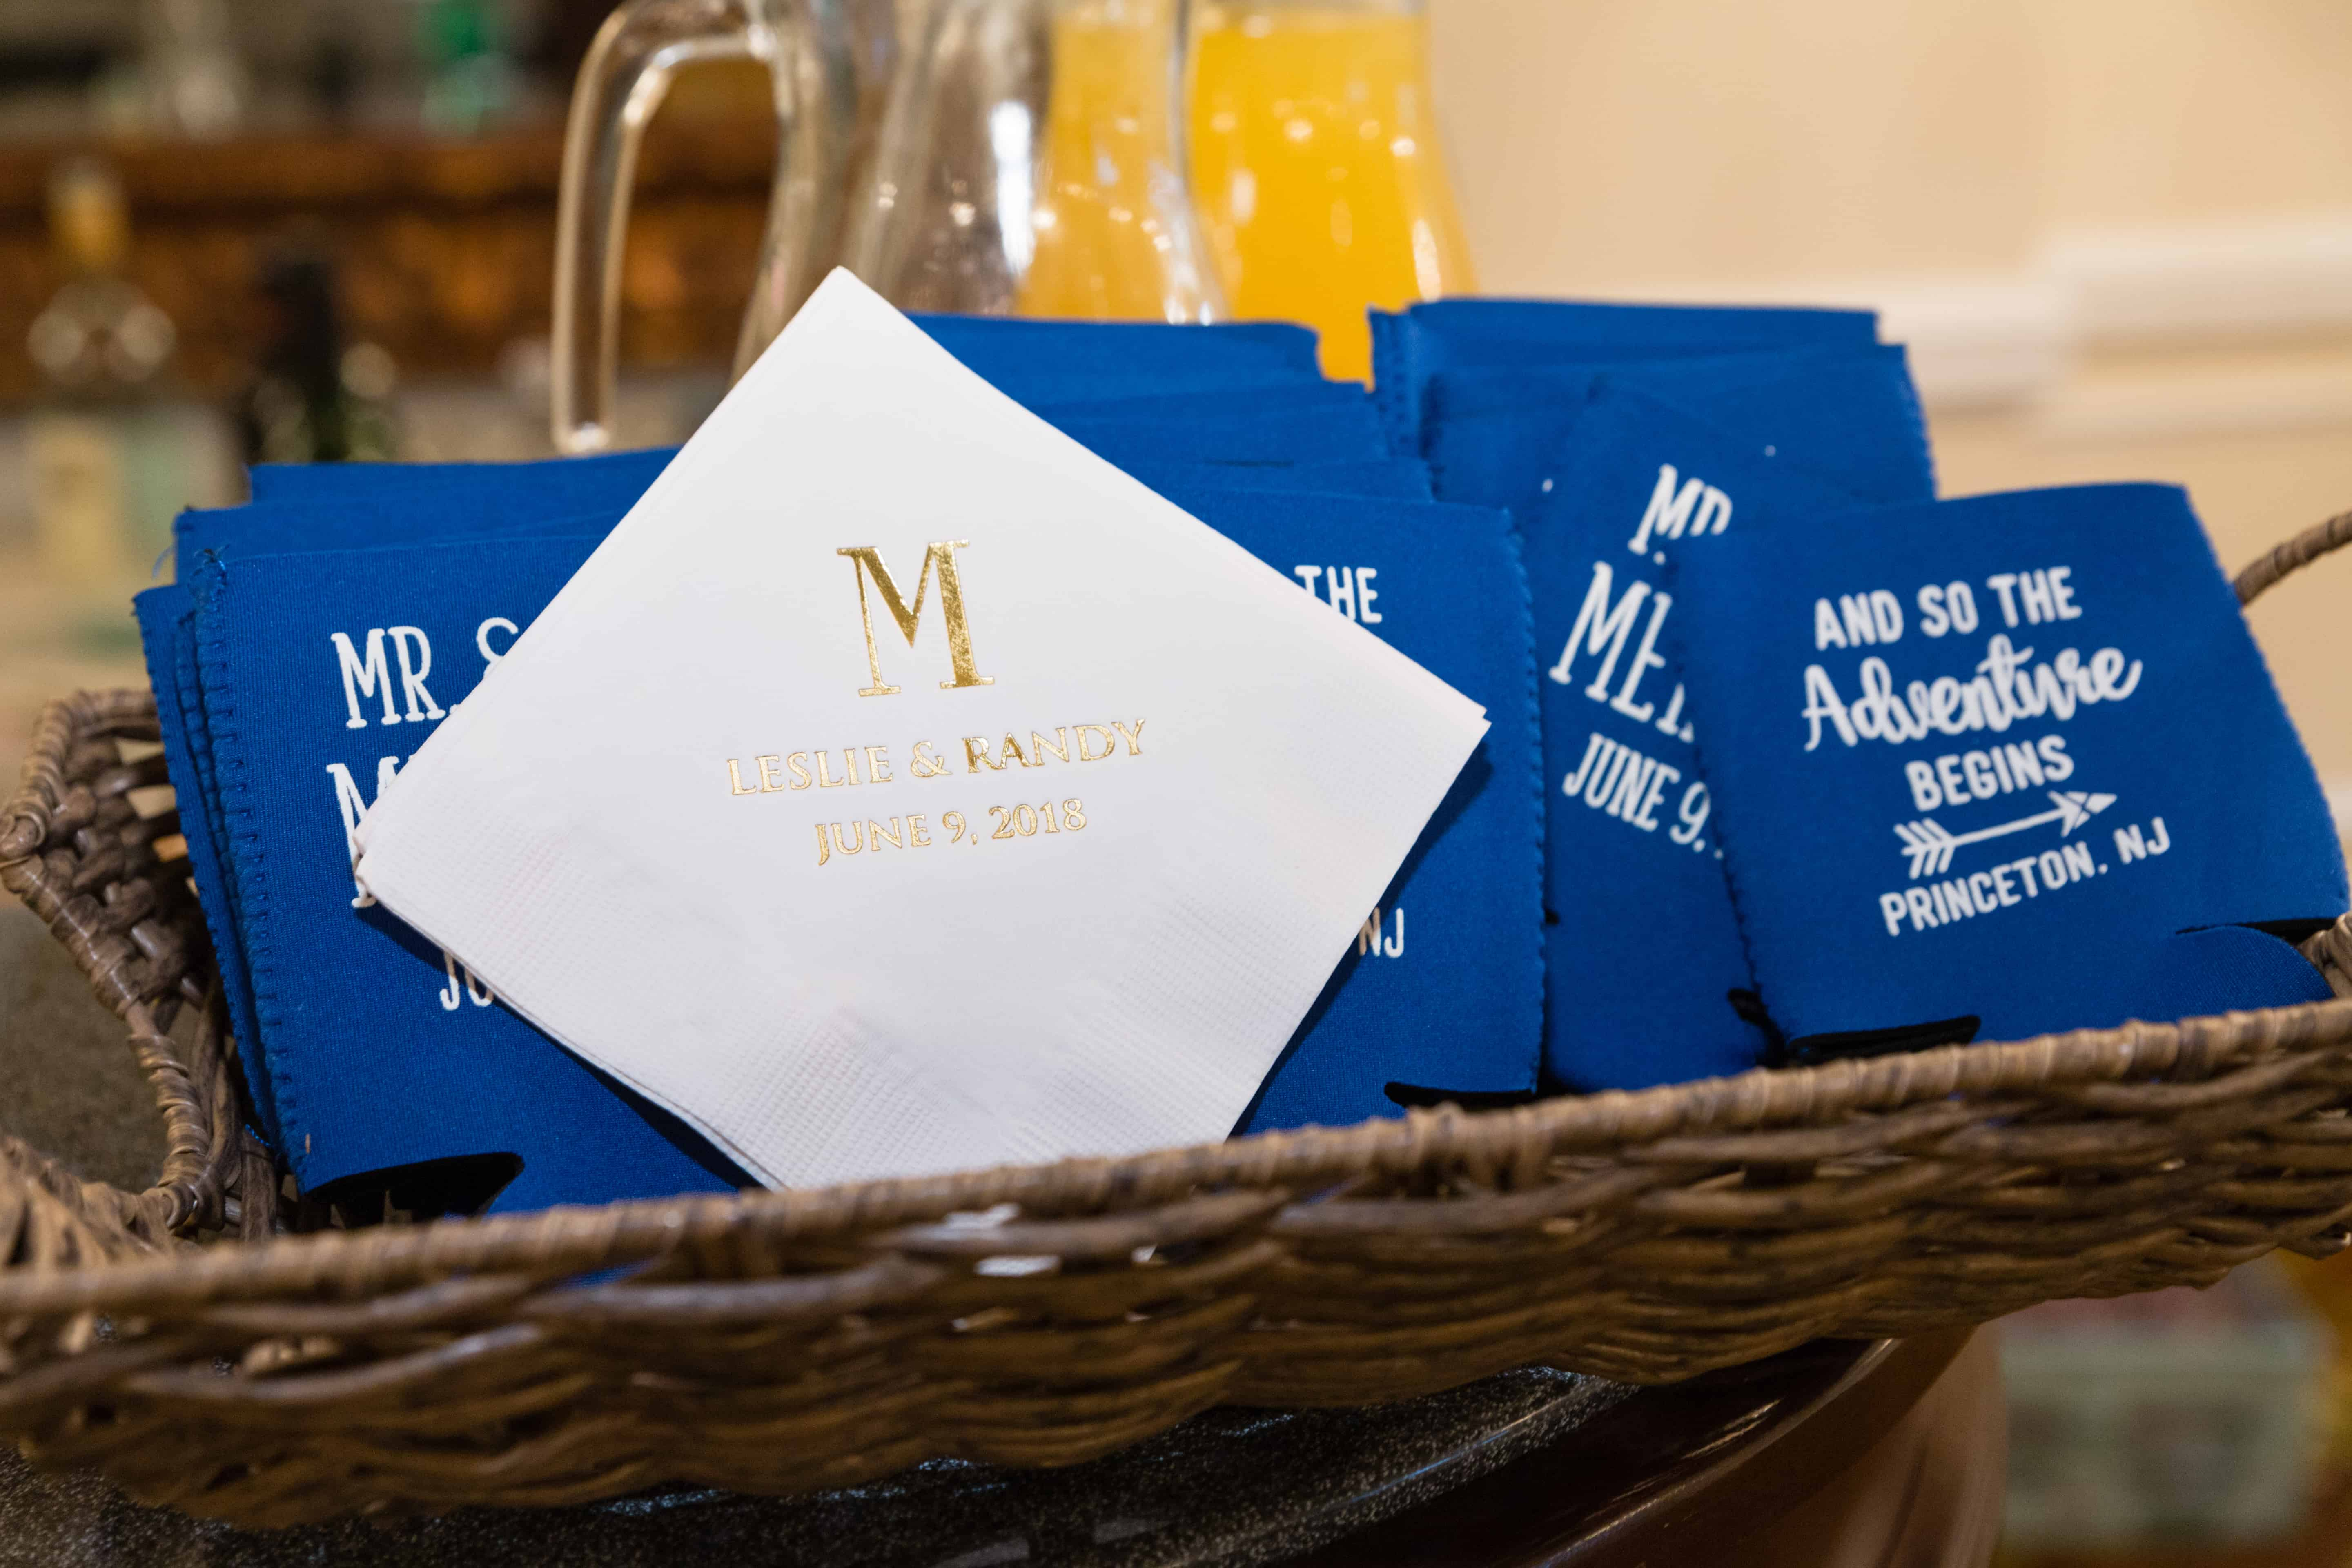 Monogrammed napkin and beer can cooler wedding favors